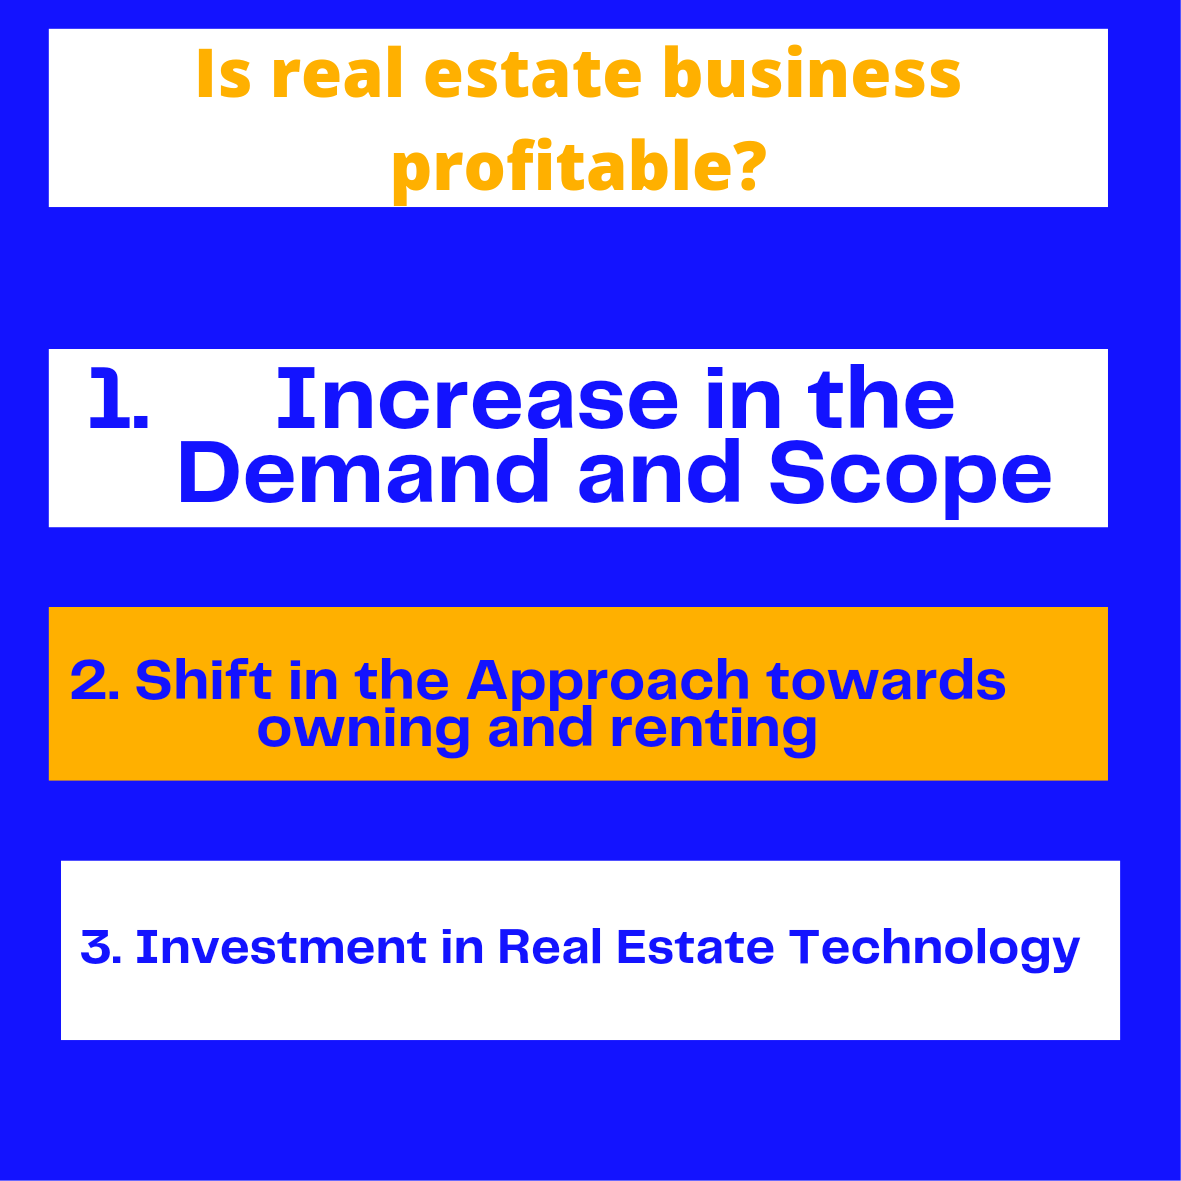 Is Real Estate Profitable?